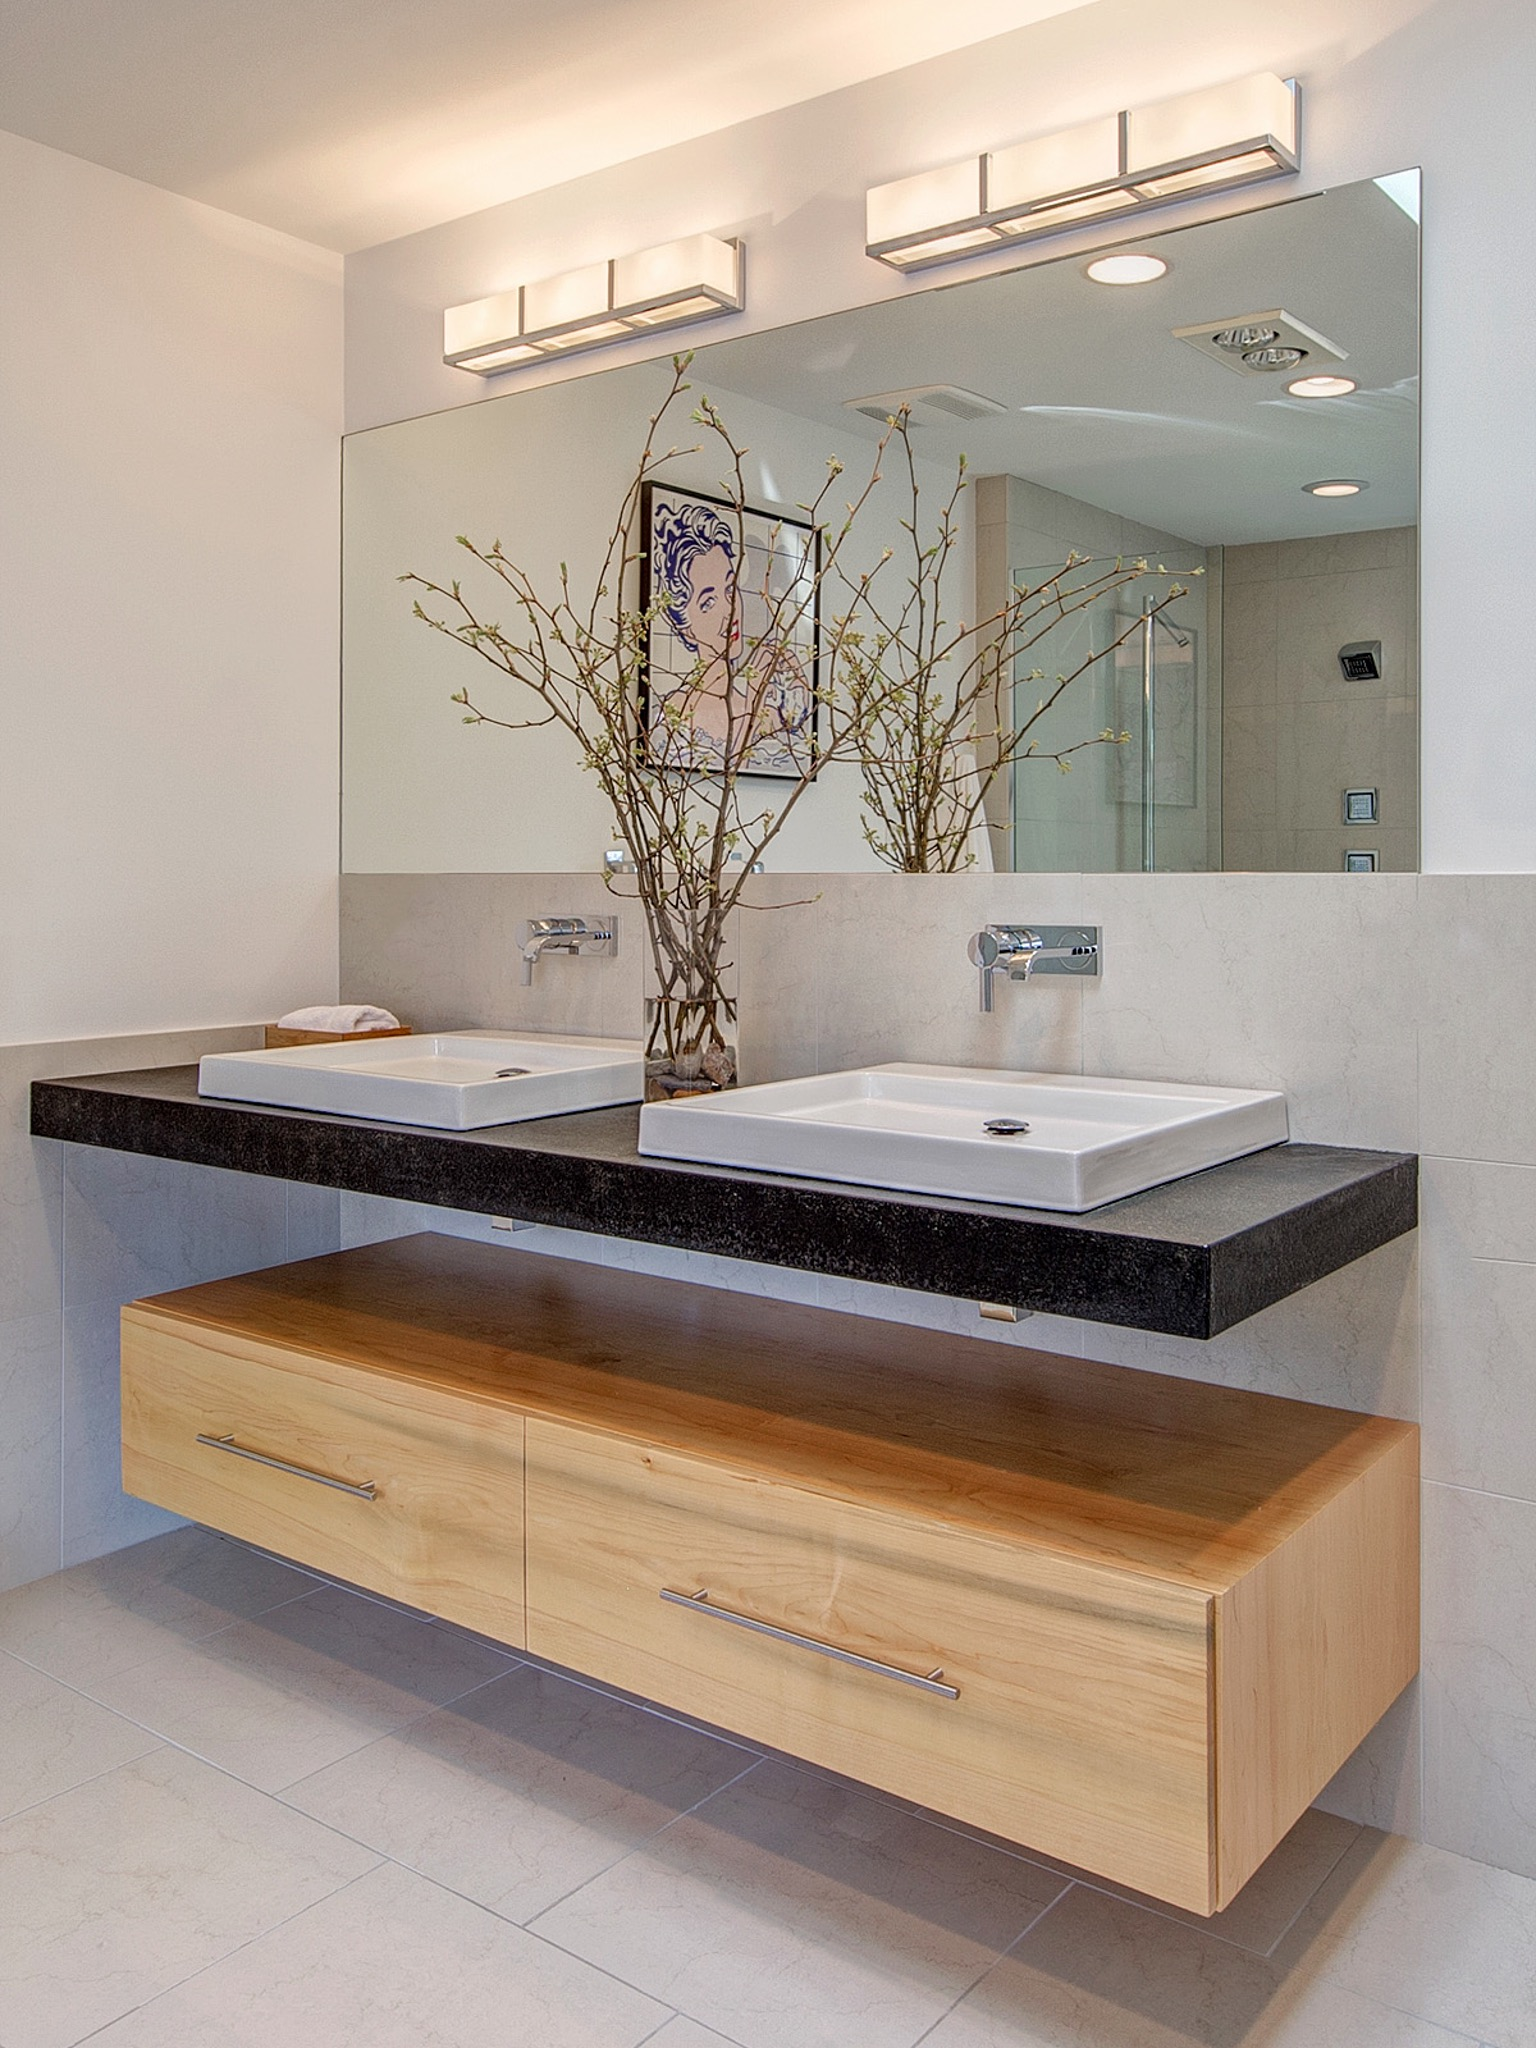 Cozy Stylish Floating Vanity And Cabinets Bathroom Furniture (Image 8 of 18)